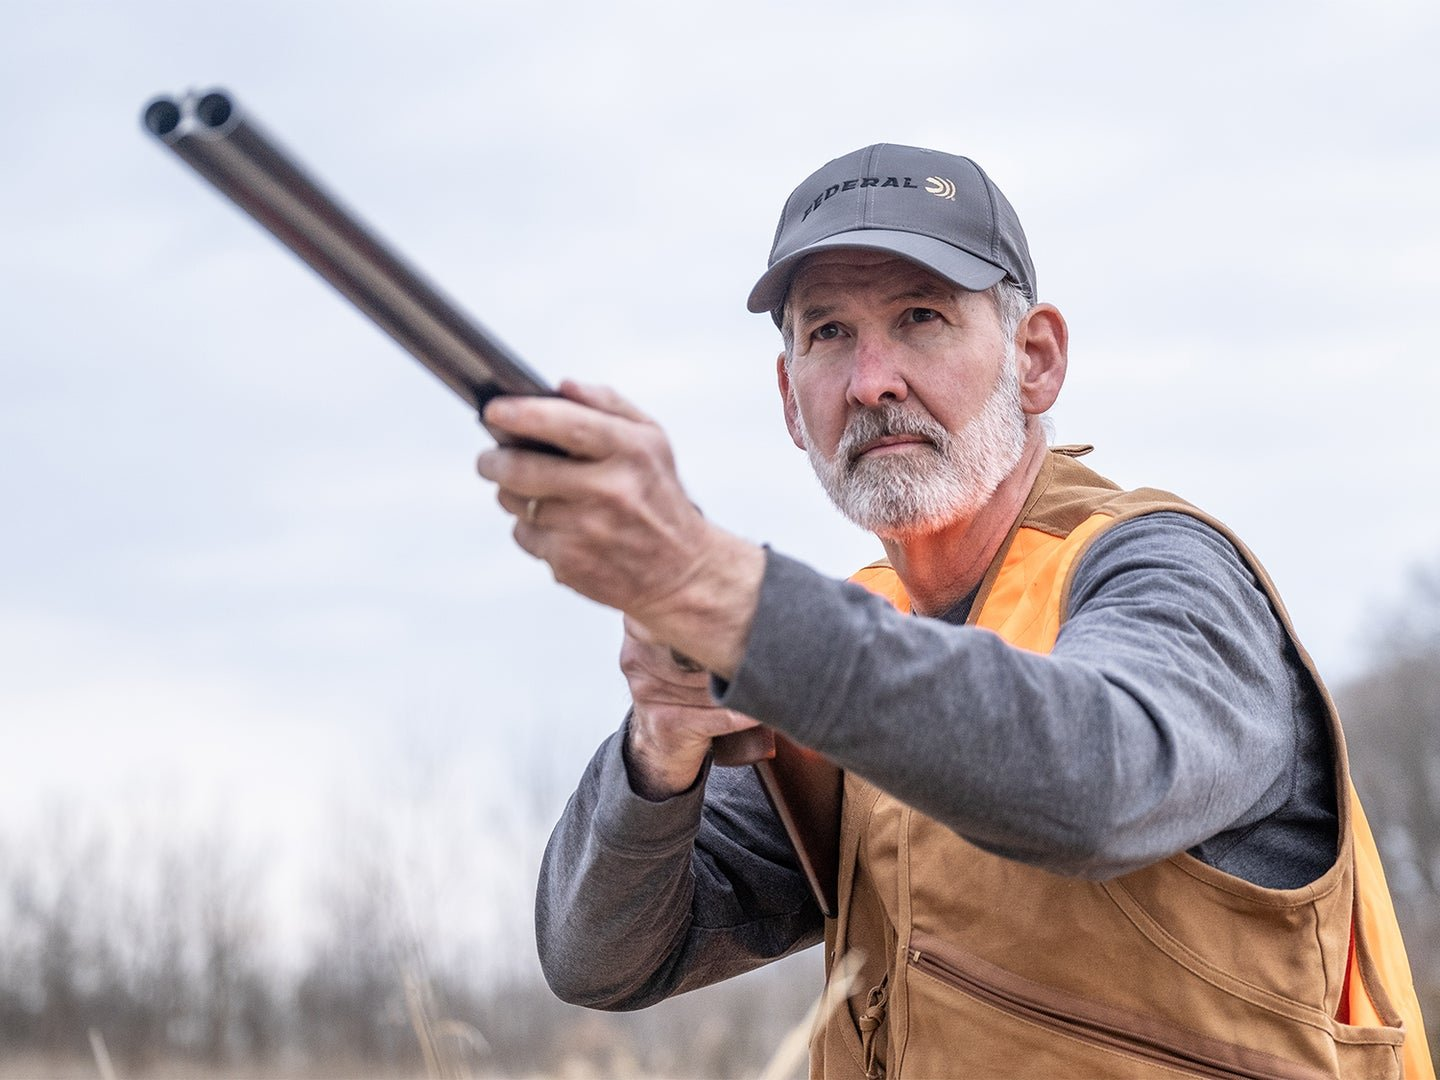 The 10 Toughest Shots in Wingshooting and How to Make Them